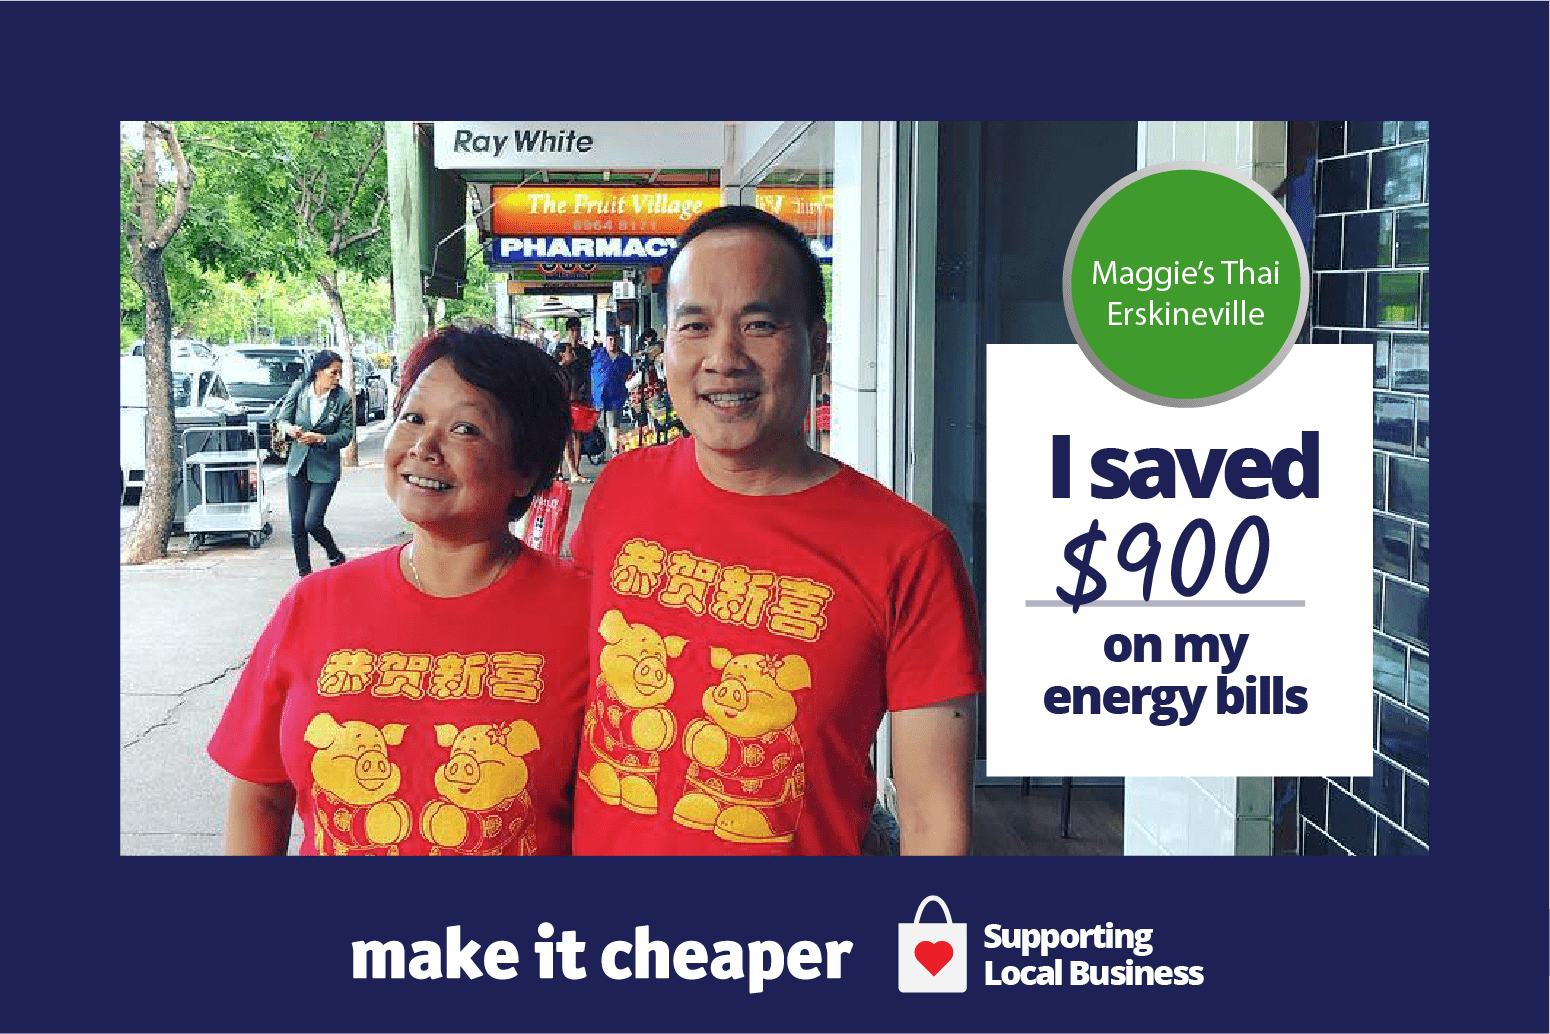 Image of Maggie's Thai owners: Maggie's Thai saved $900 on their energy bills